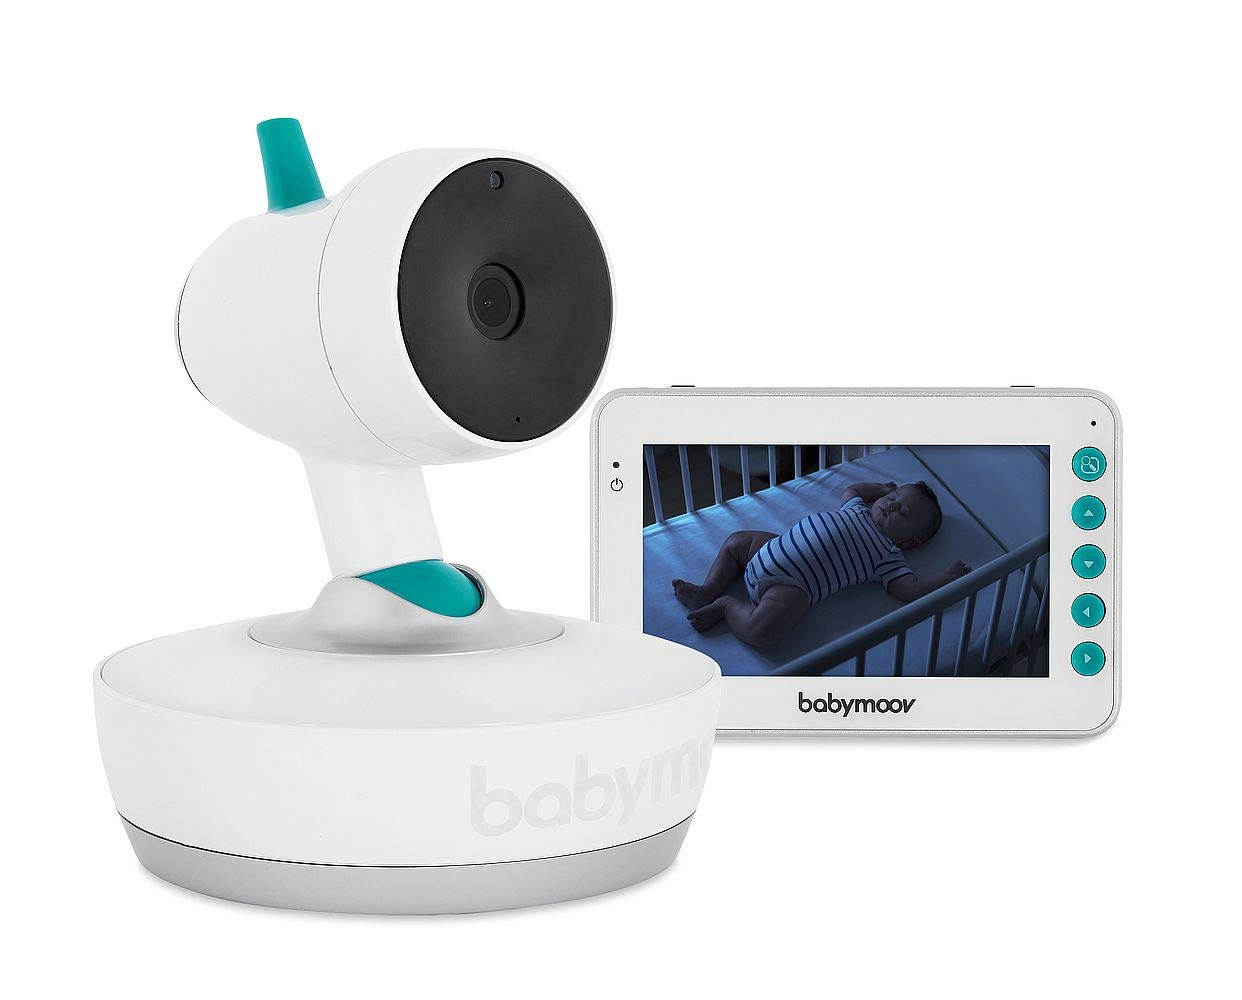 Babymoov YOO Moov Motorised Video Baby Monitor BABYMOOV Includes 2 usb cables (plugs not supplied): adapters are replaced by longer usb cables (2.5 m). they are compatible with all 5v usb plugs, reusable on several devices 360° view: the YOO Moov camera tilts from front to back and right to left. easy to control via the screen (parent unit) Innovative: the motor hidden inside the foot of the camera is very efficient and silent. The camera quietly changes direction. its movements are smooth, not jerky 1